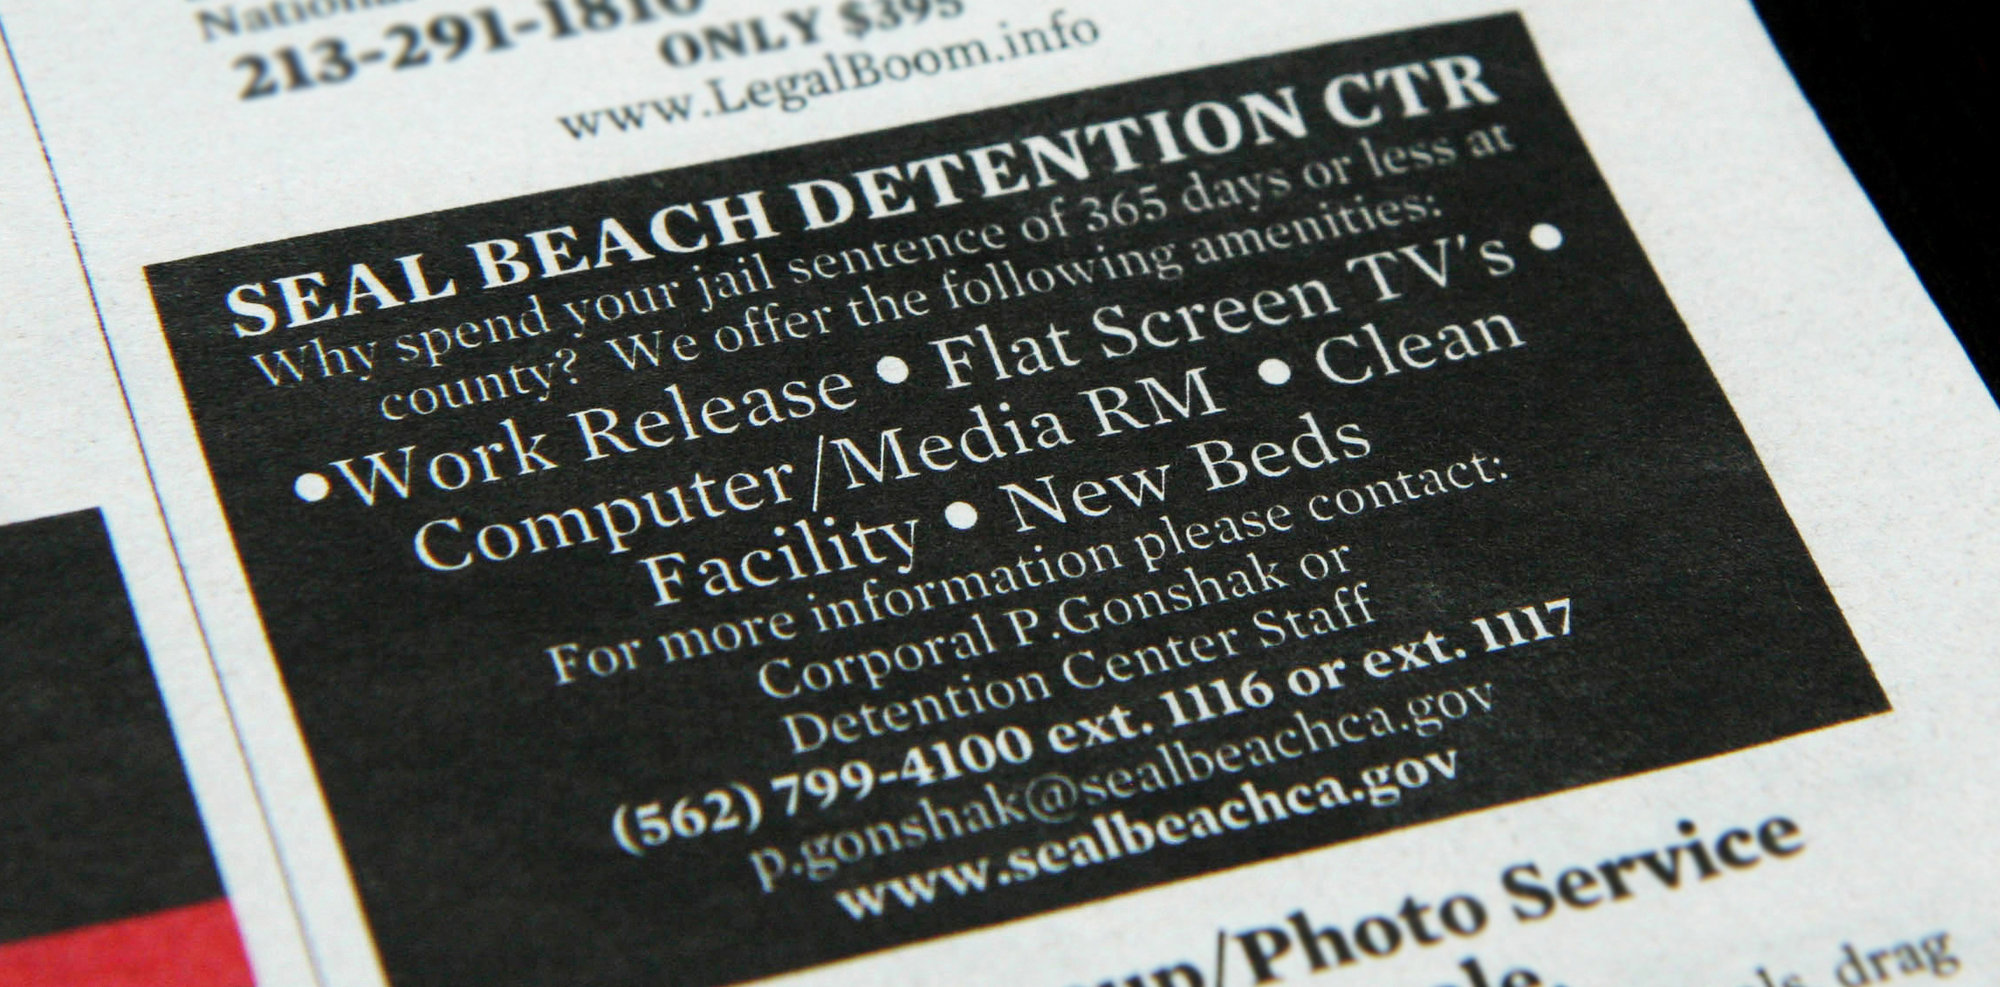 An advertisement placed in LA Weekly in 2013 for the pay-to-stay program at Seal Beach Detention Center.